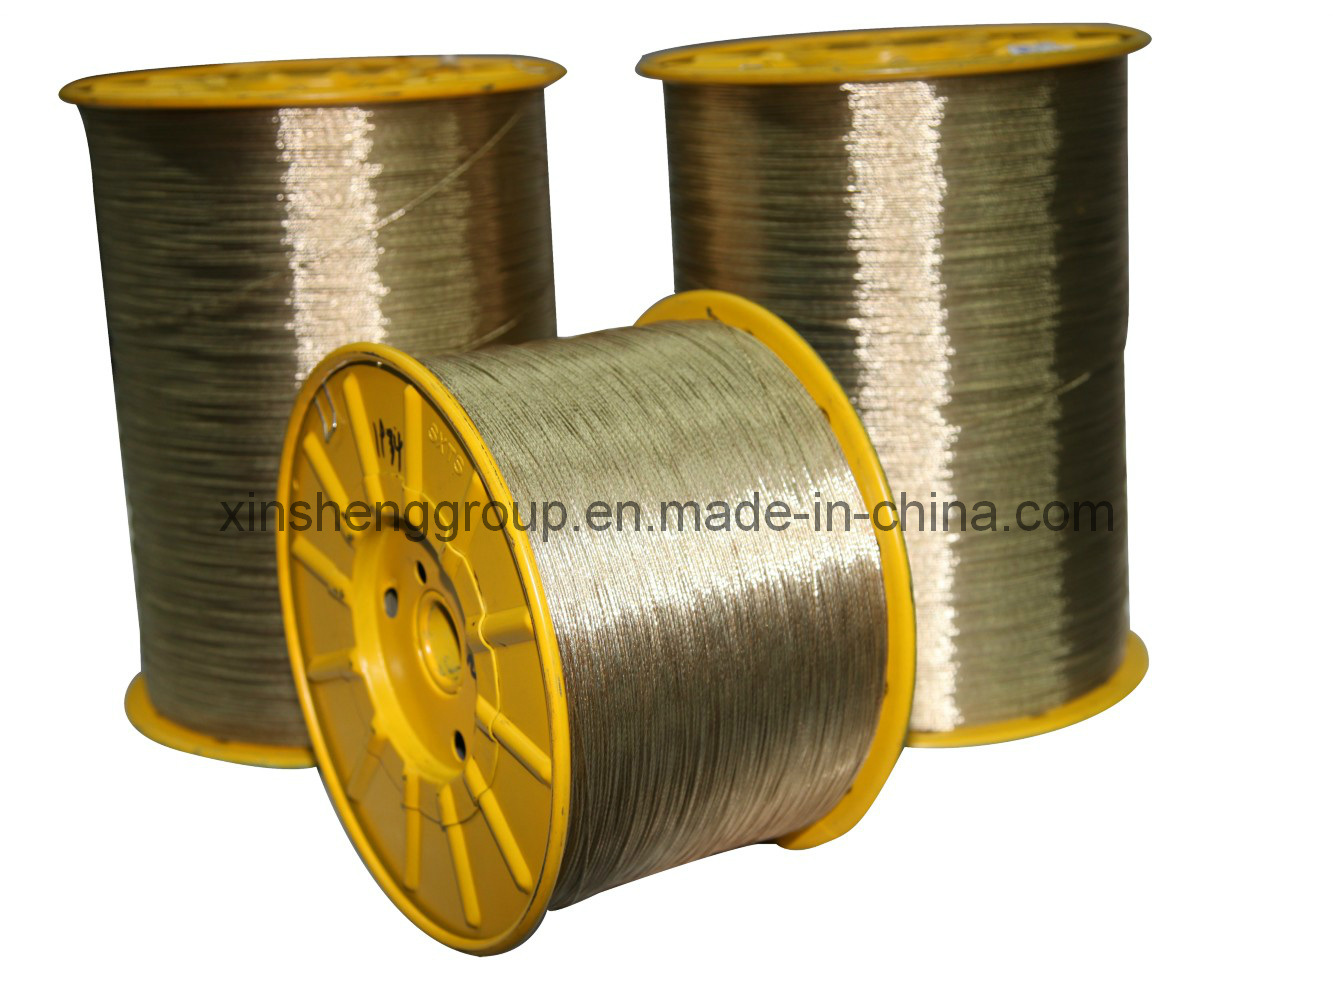 China Supplier of Brass Coated Tire Steel Cord